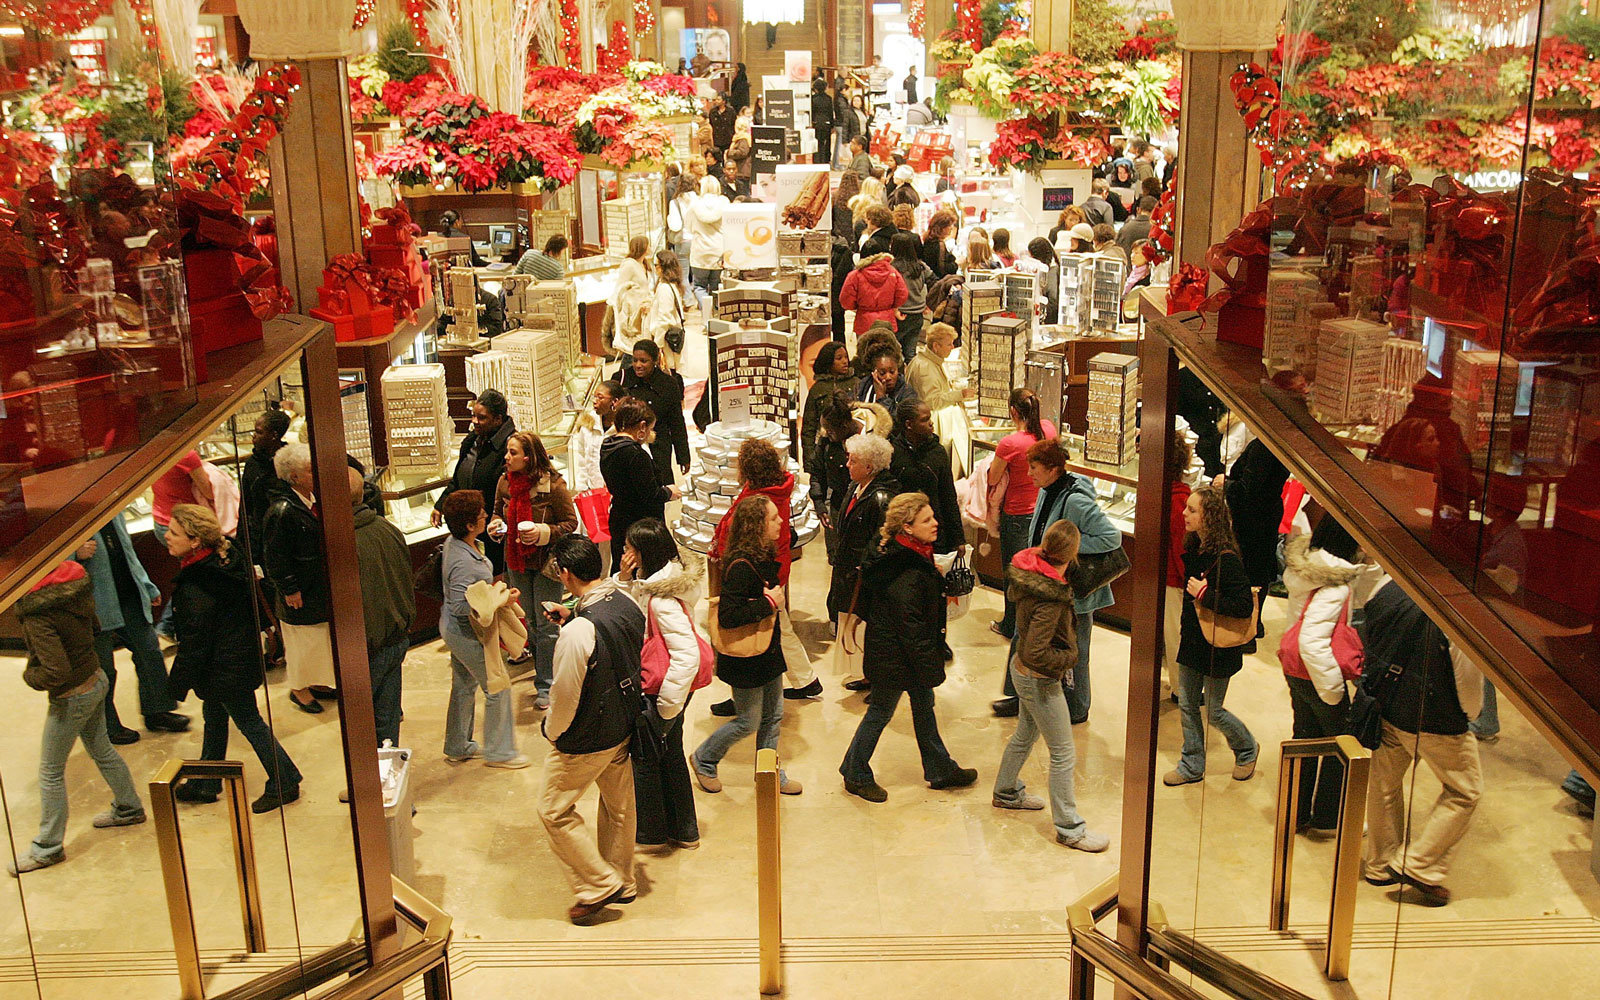 Christmas Shops Sydney Here Are The Stores That Are Open On Christmas Day Across The